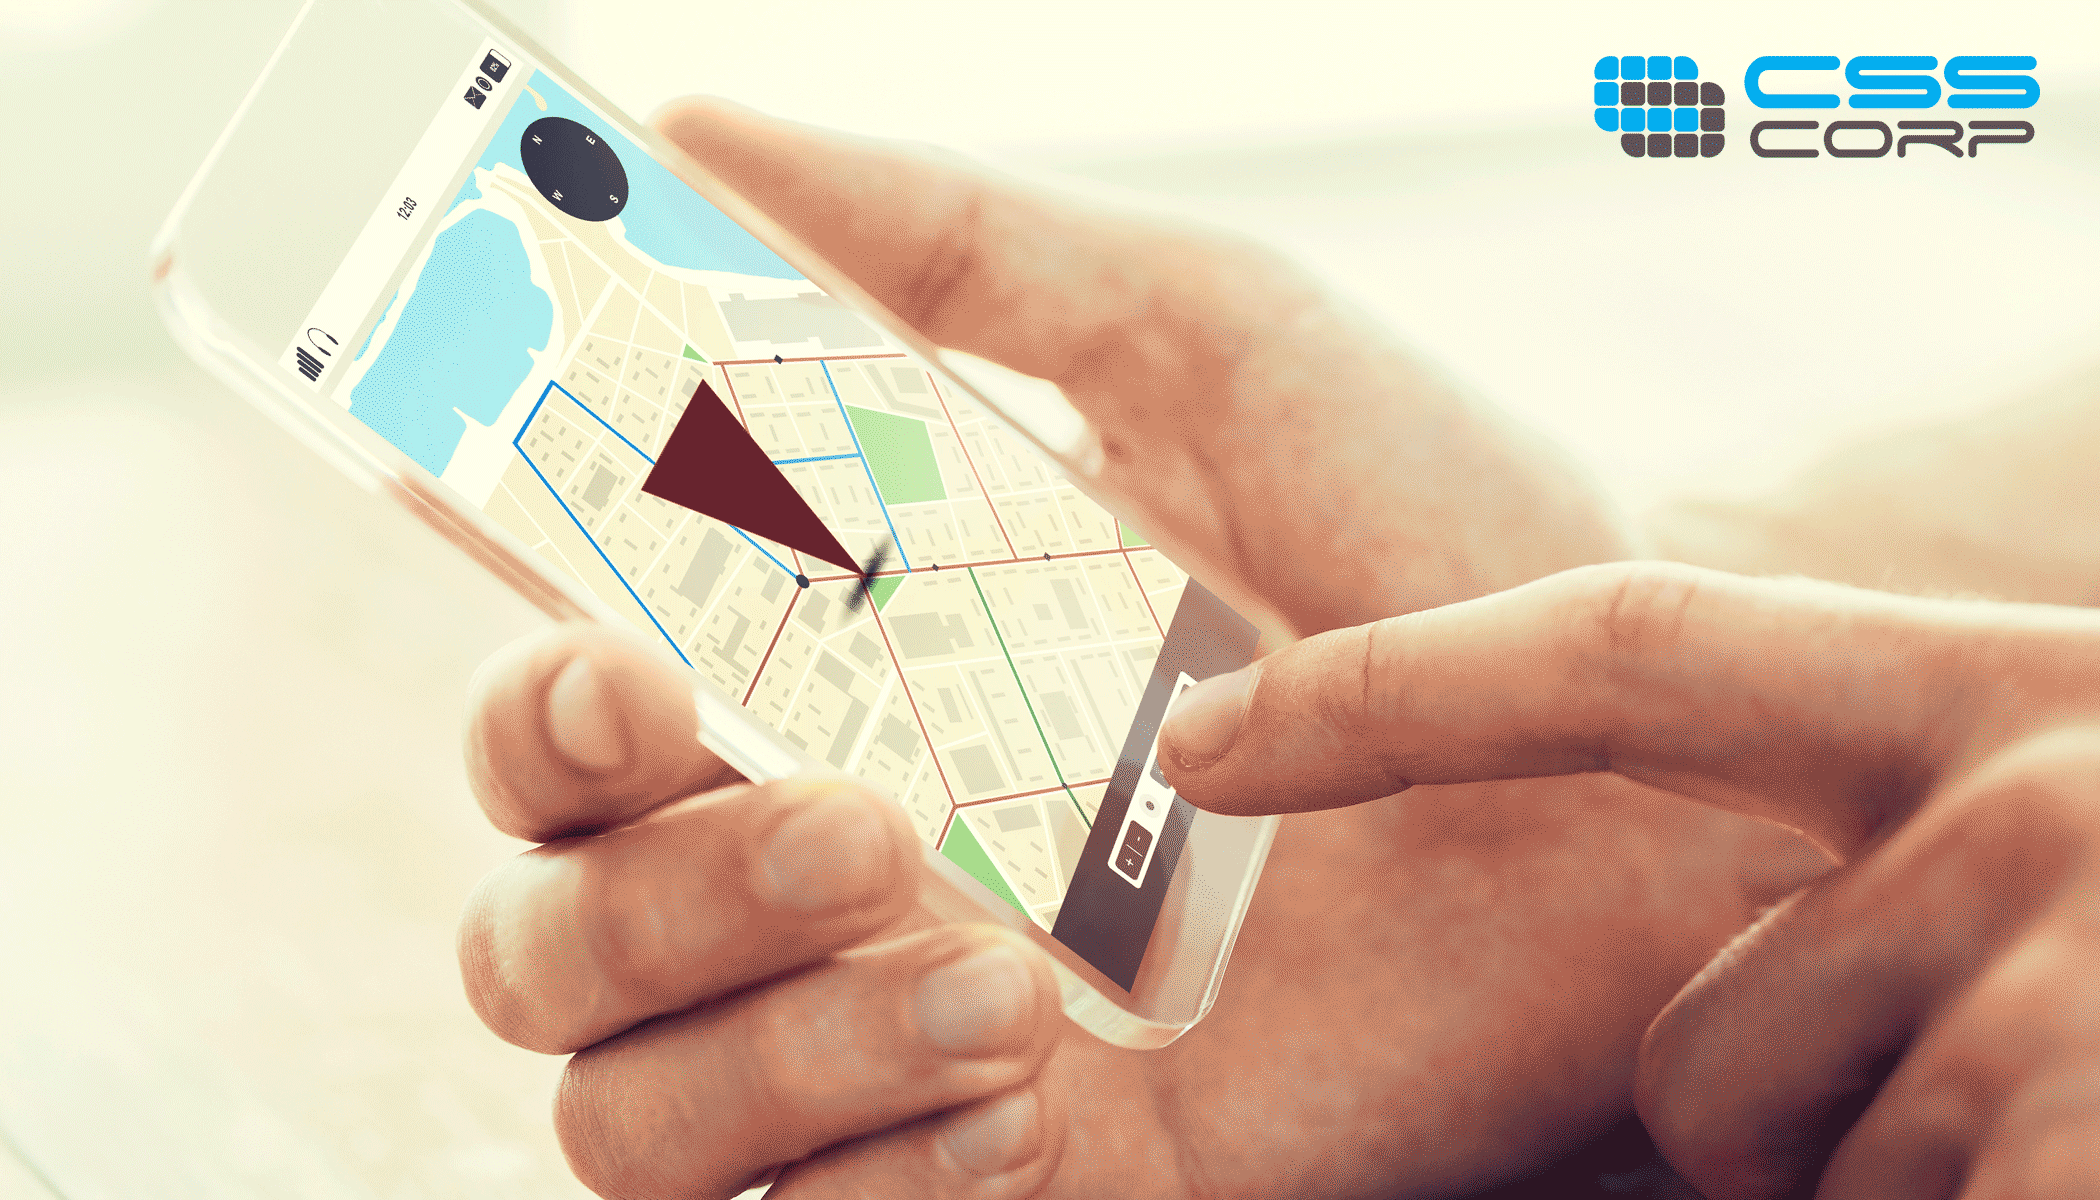 Location Intelligence unlocks the true value of Geo-Spatial data